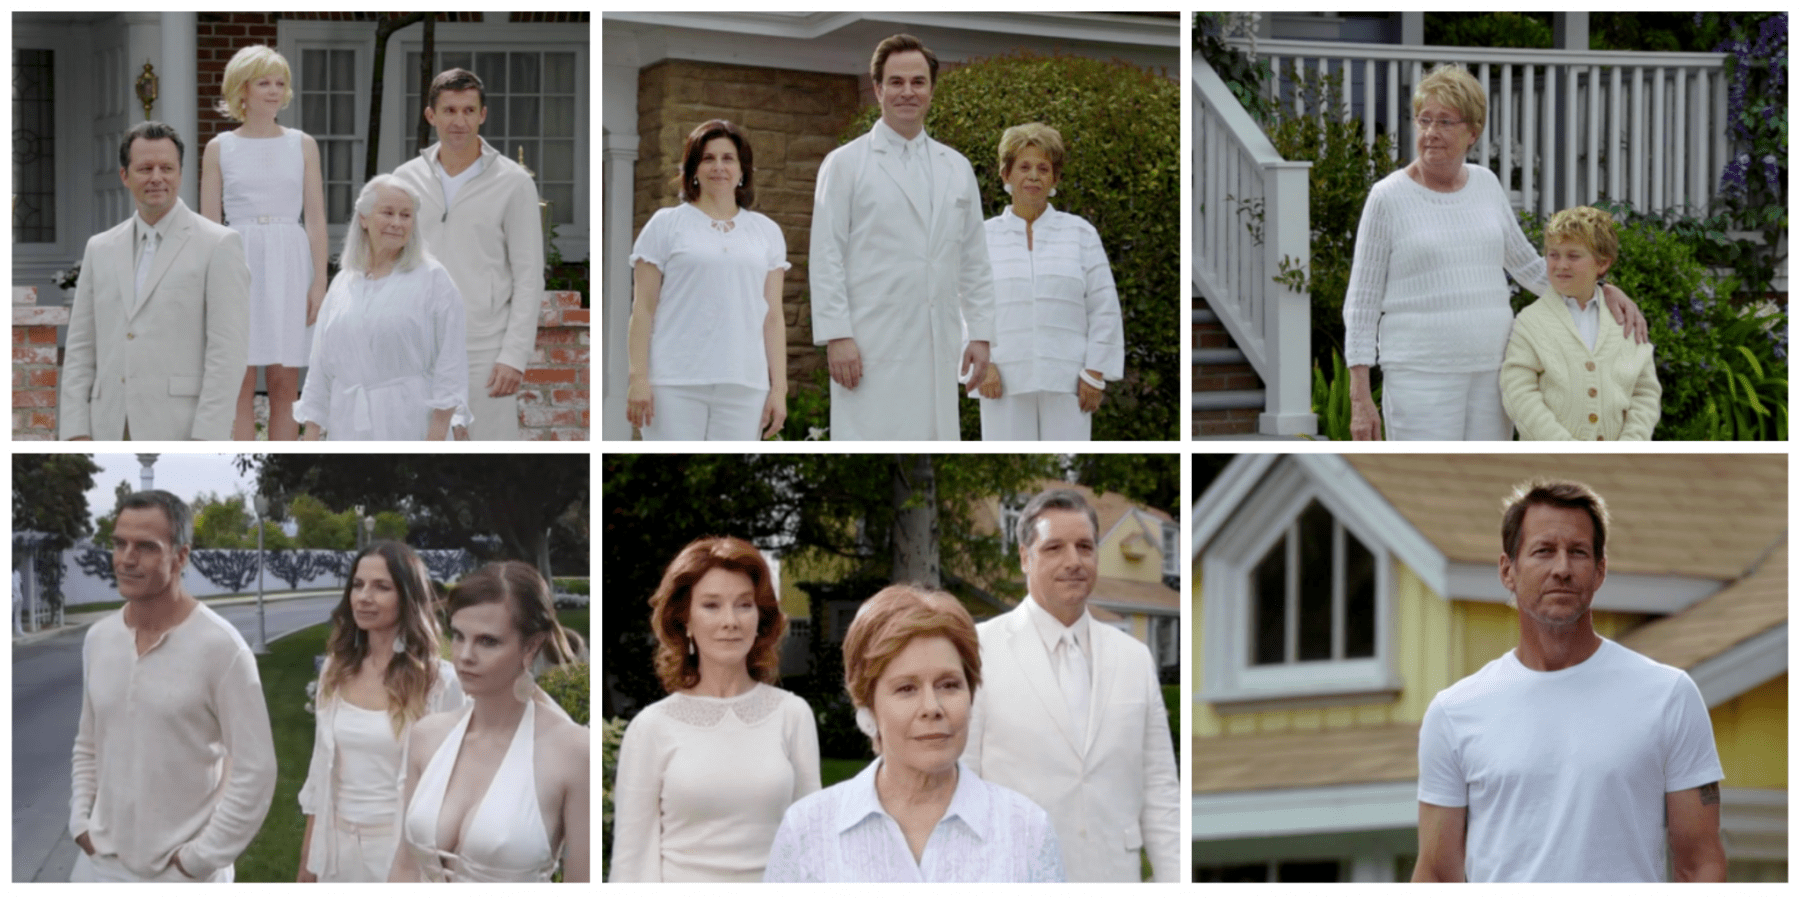 The ghosts of Wisteria Lane as seen in the finale of Desperate Housewives